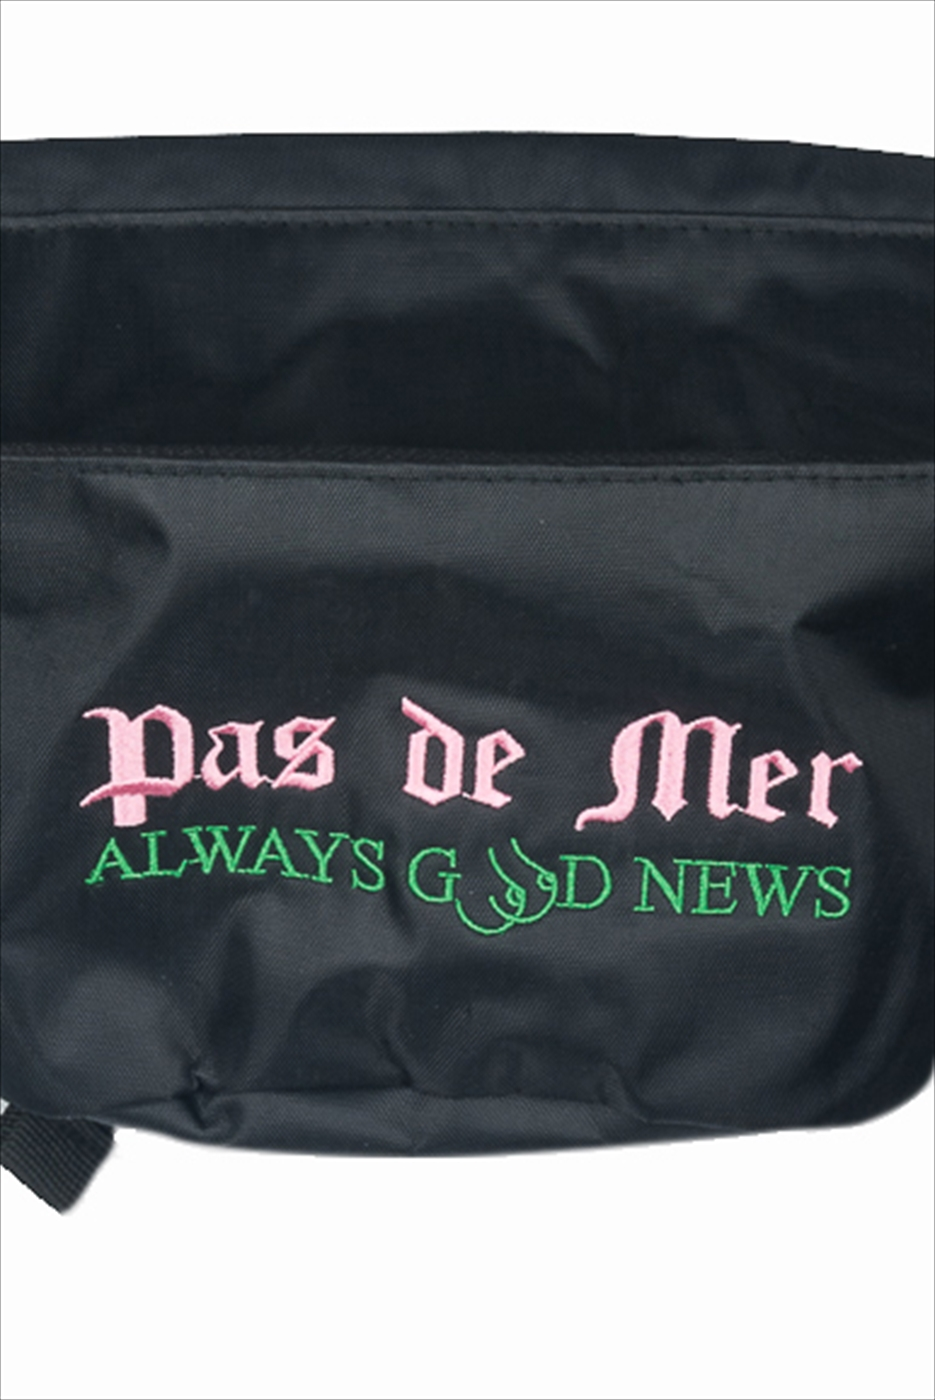 【PAS DE MER/パドゥメ】GOOD NEWS POUCH ポーチ / BLACK